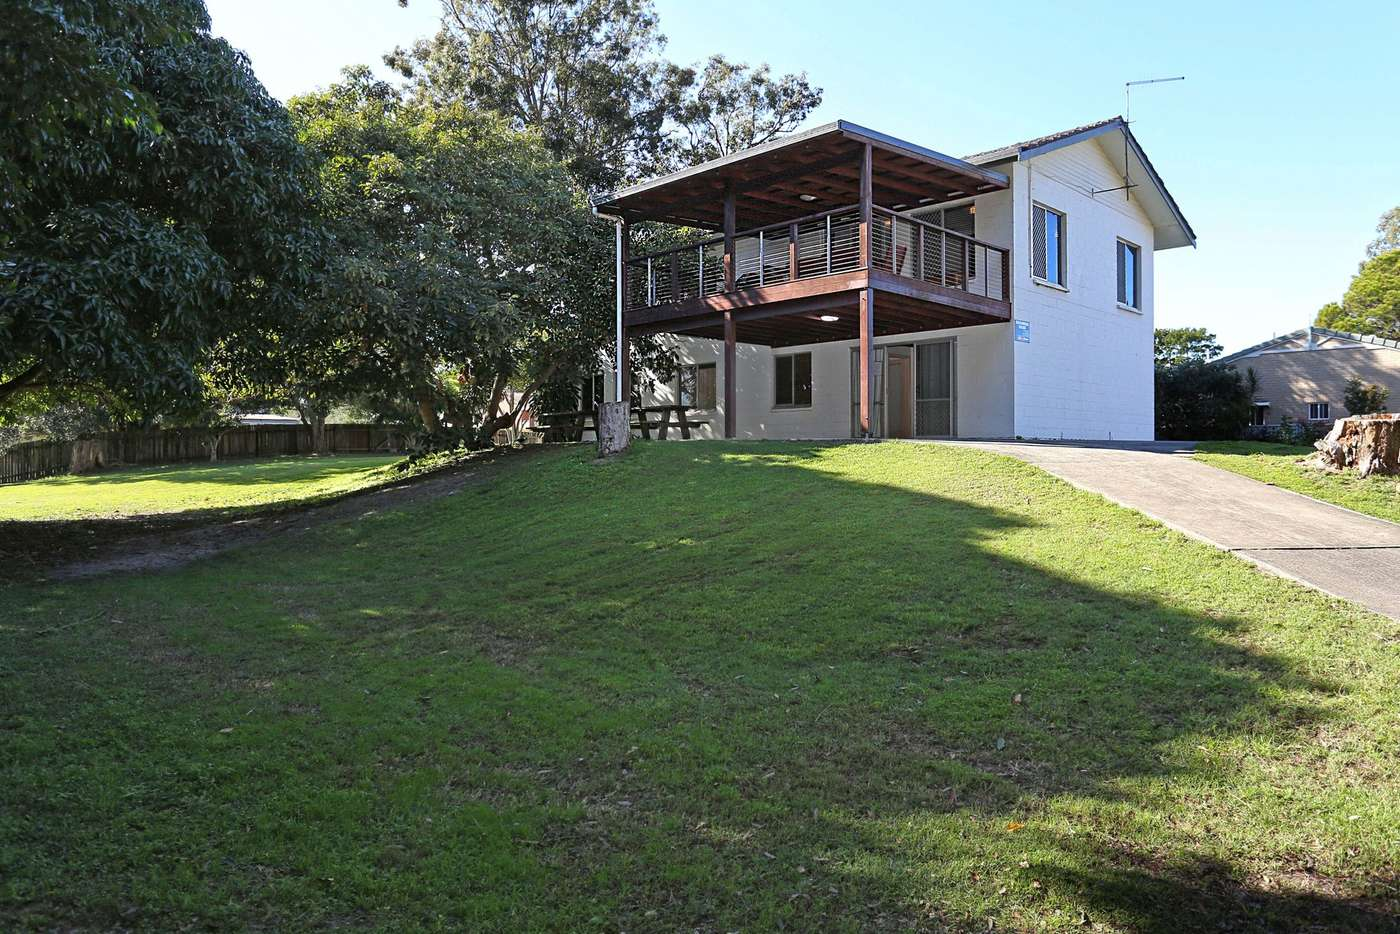 Main view of Homely house listing, 10-12 Charles Street, Iluka NSW 2466